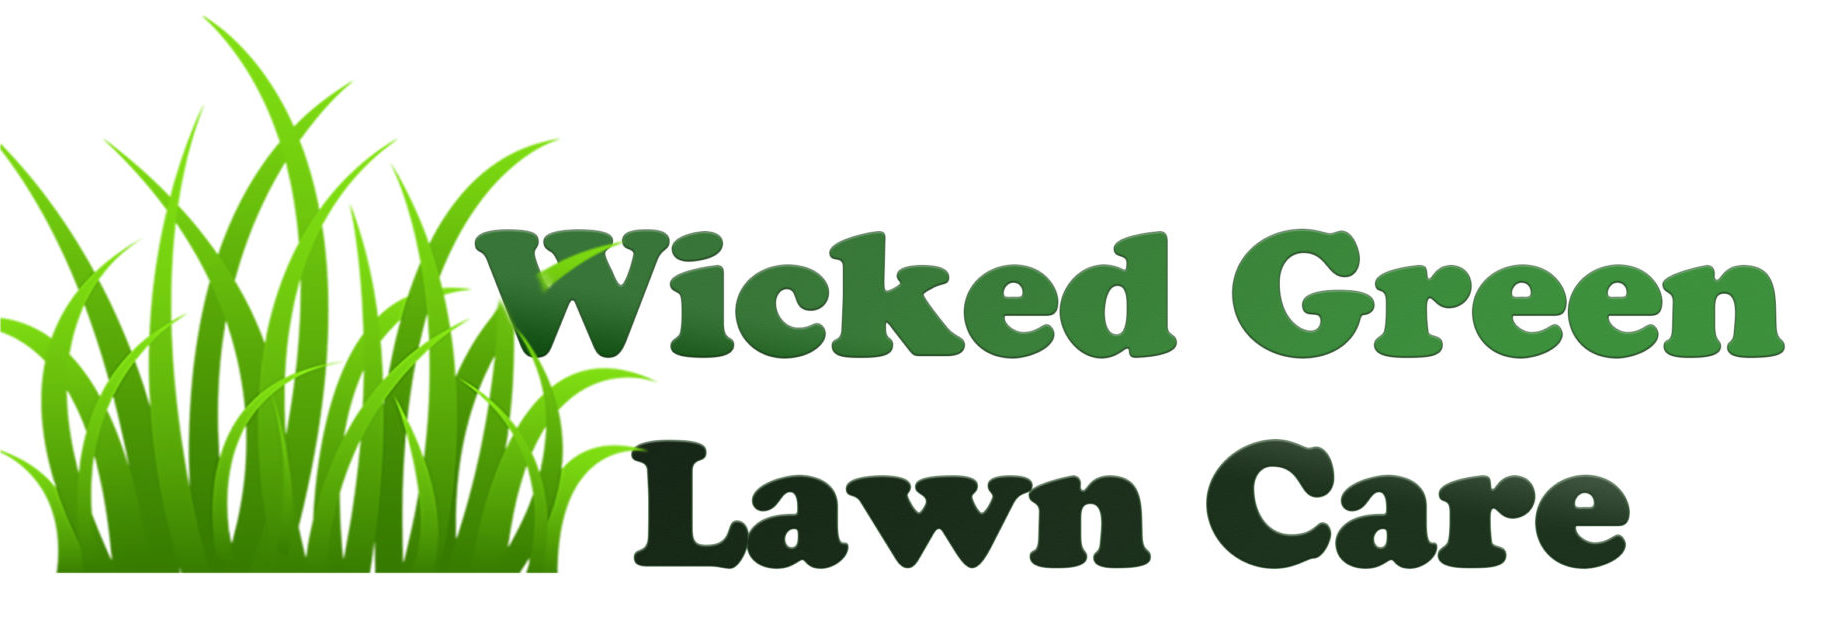 Wicked Green Lawn Care